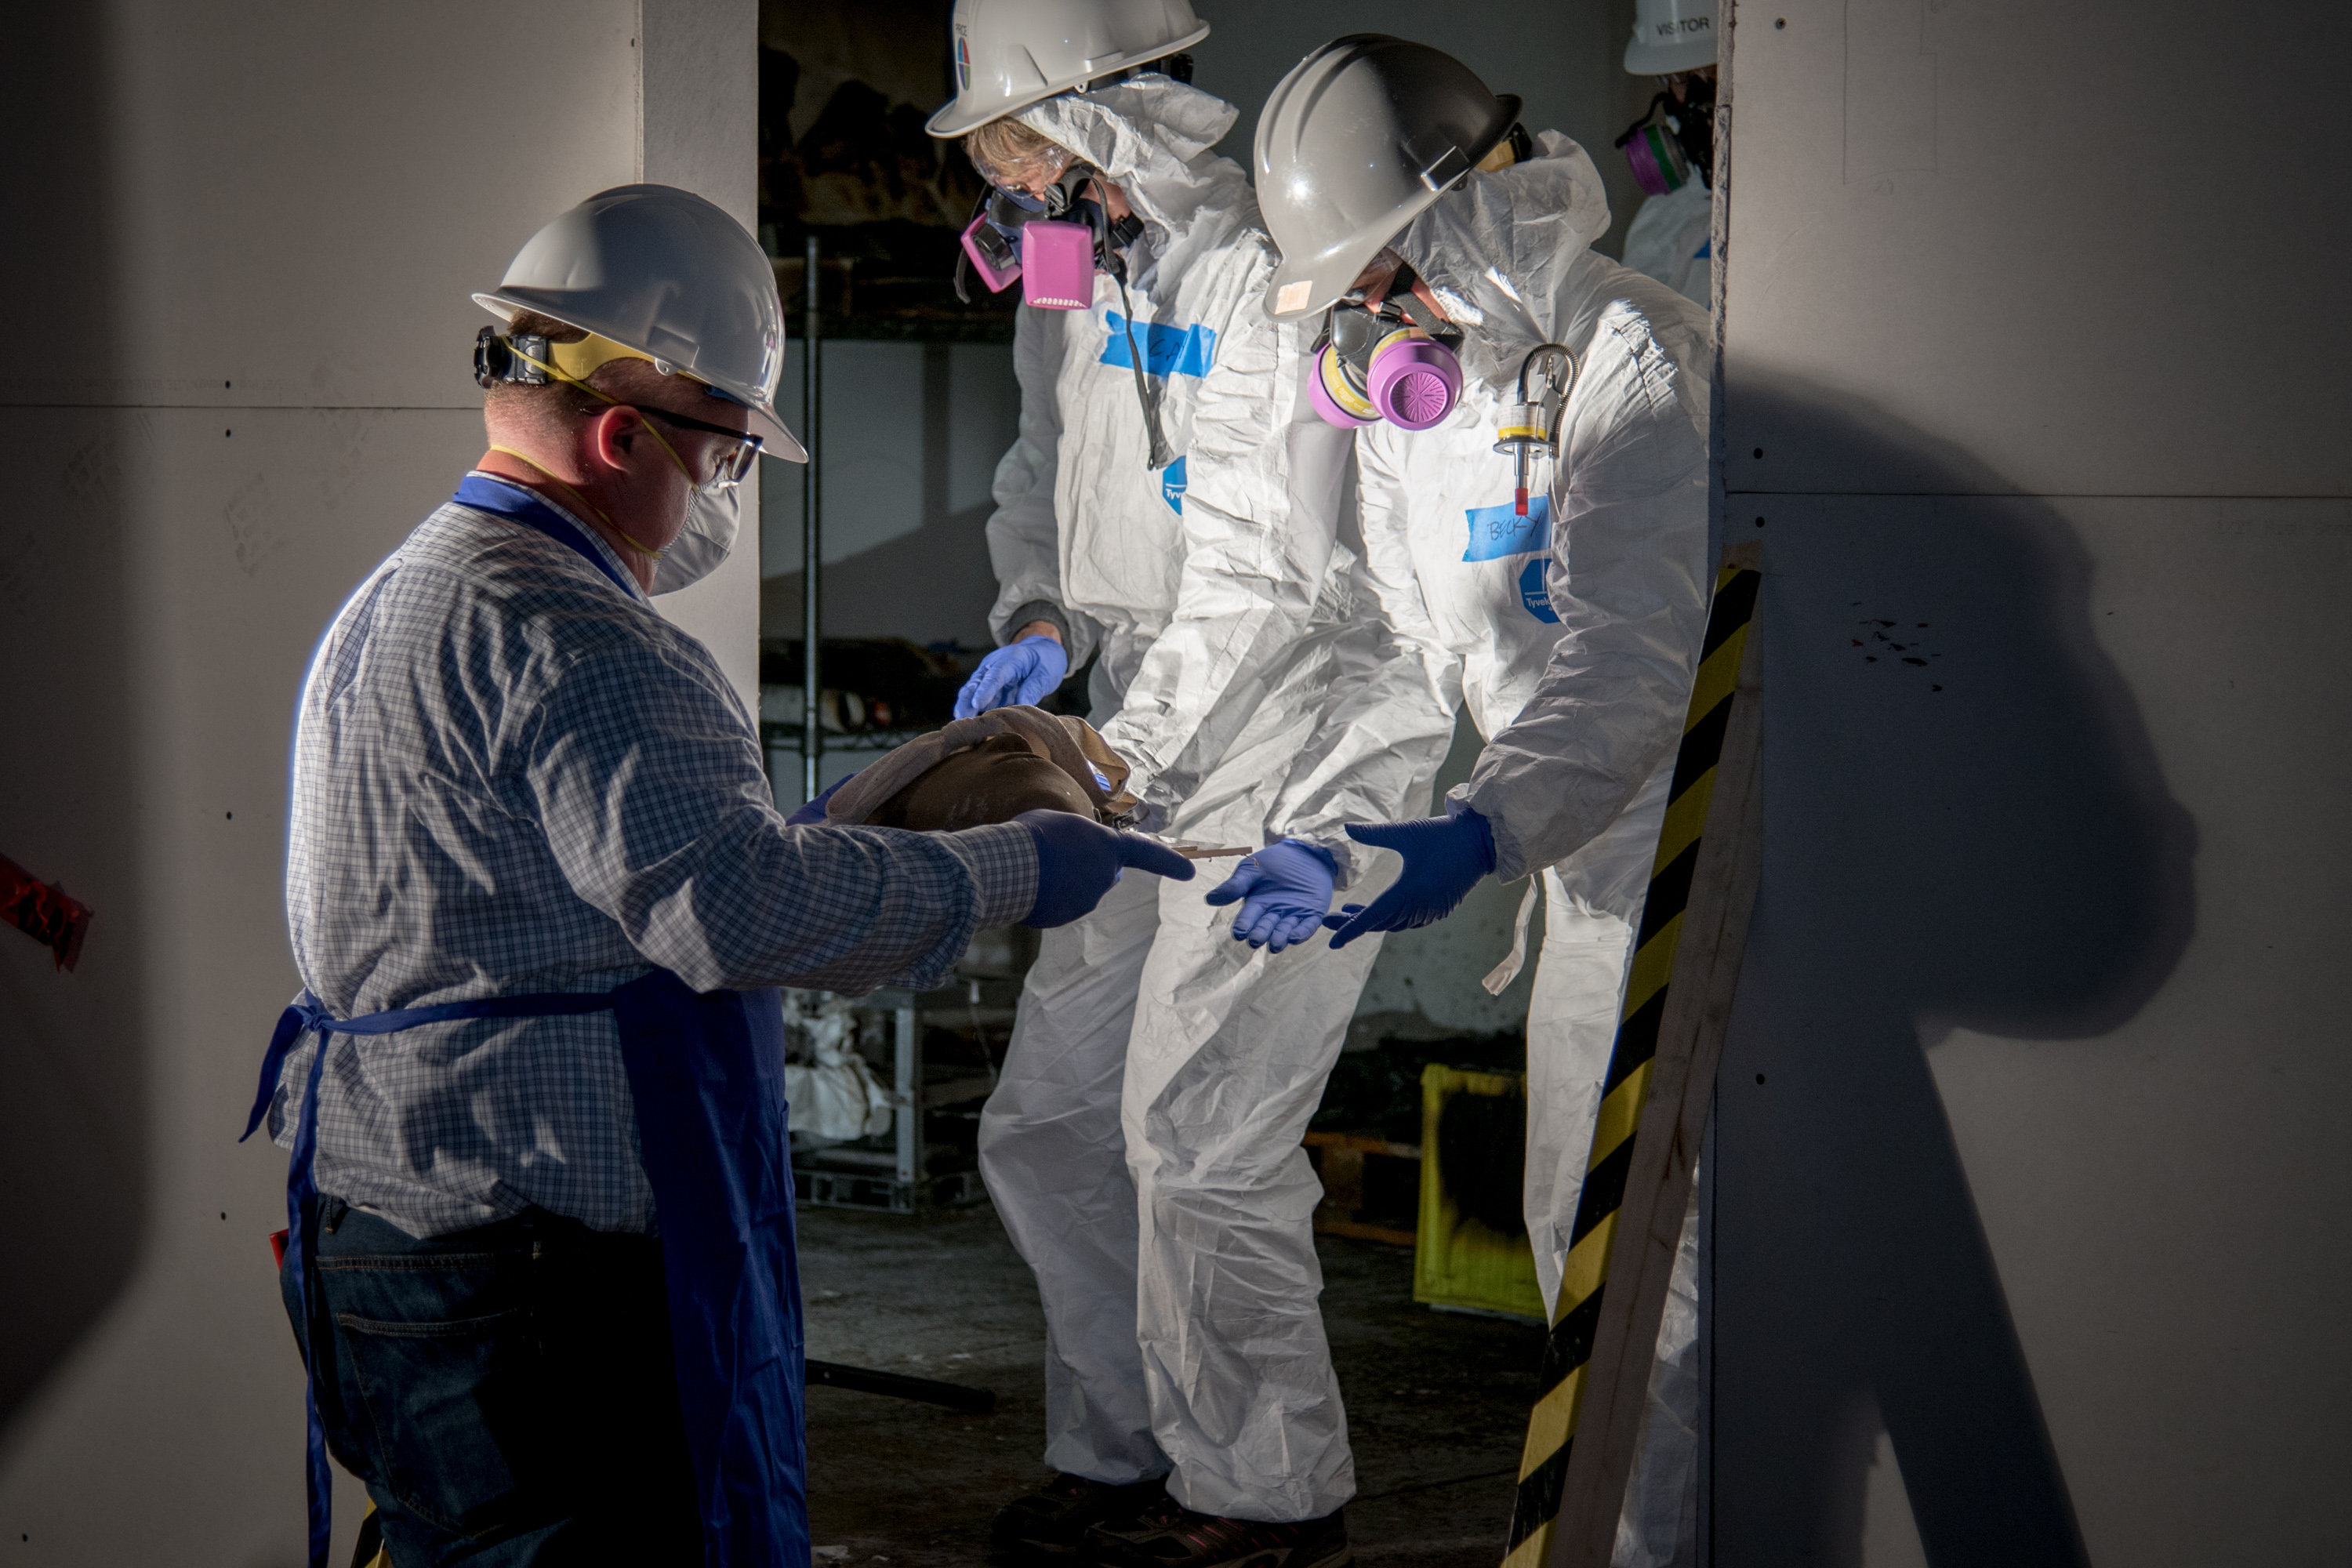 People wearing full body white hazard suits, hard hats, safety glasses and face masks emerge from burn test room with clay mask artifact